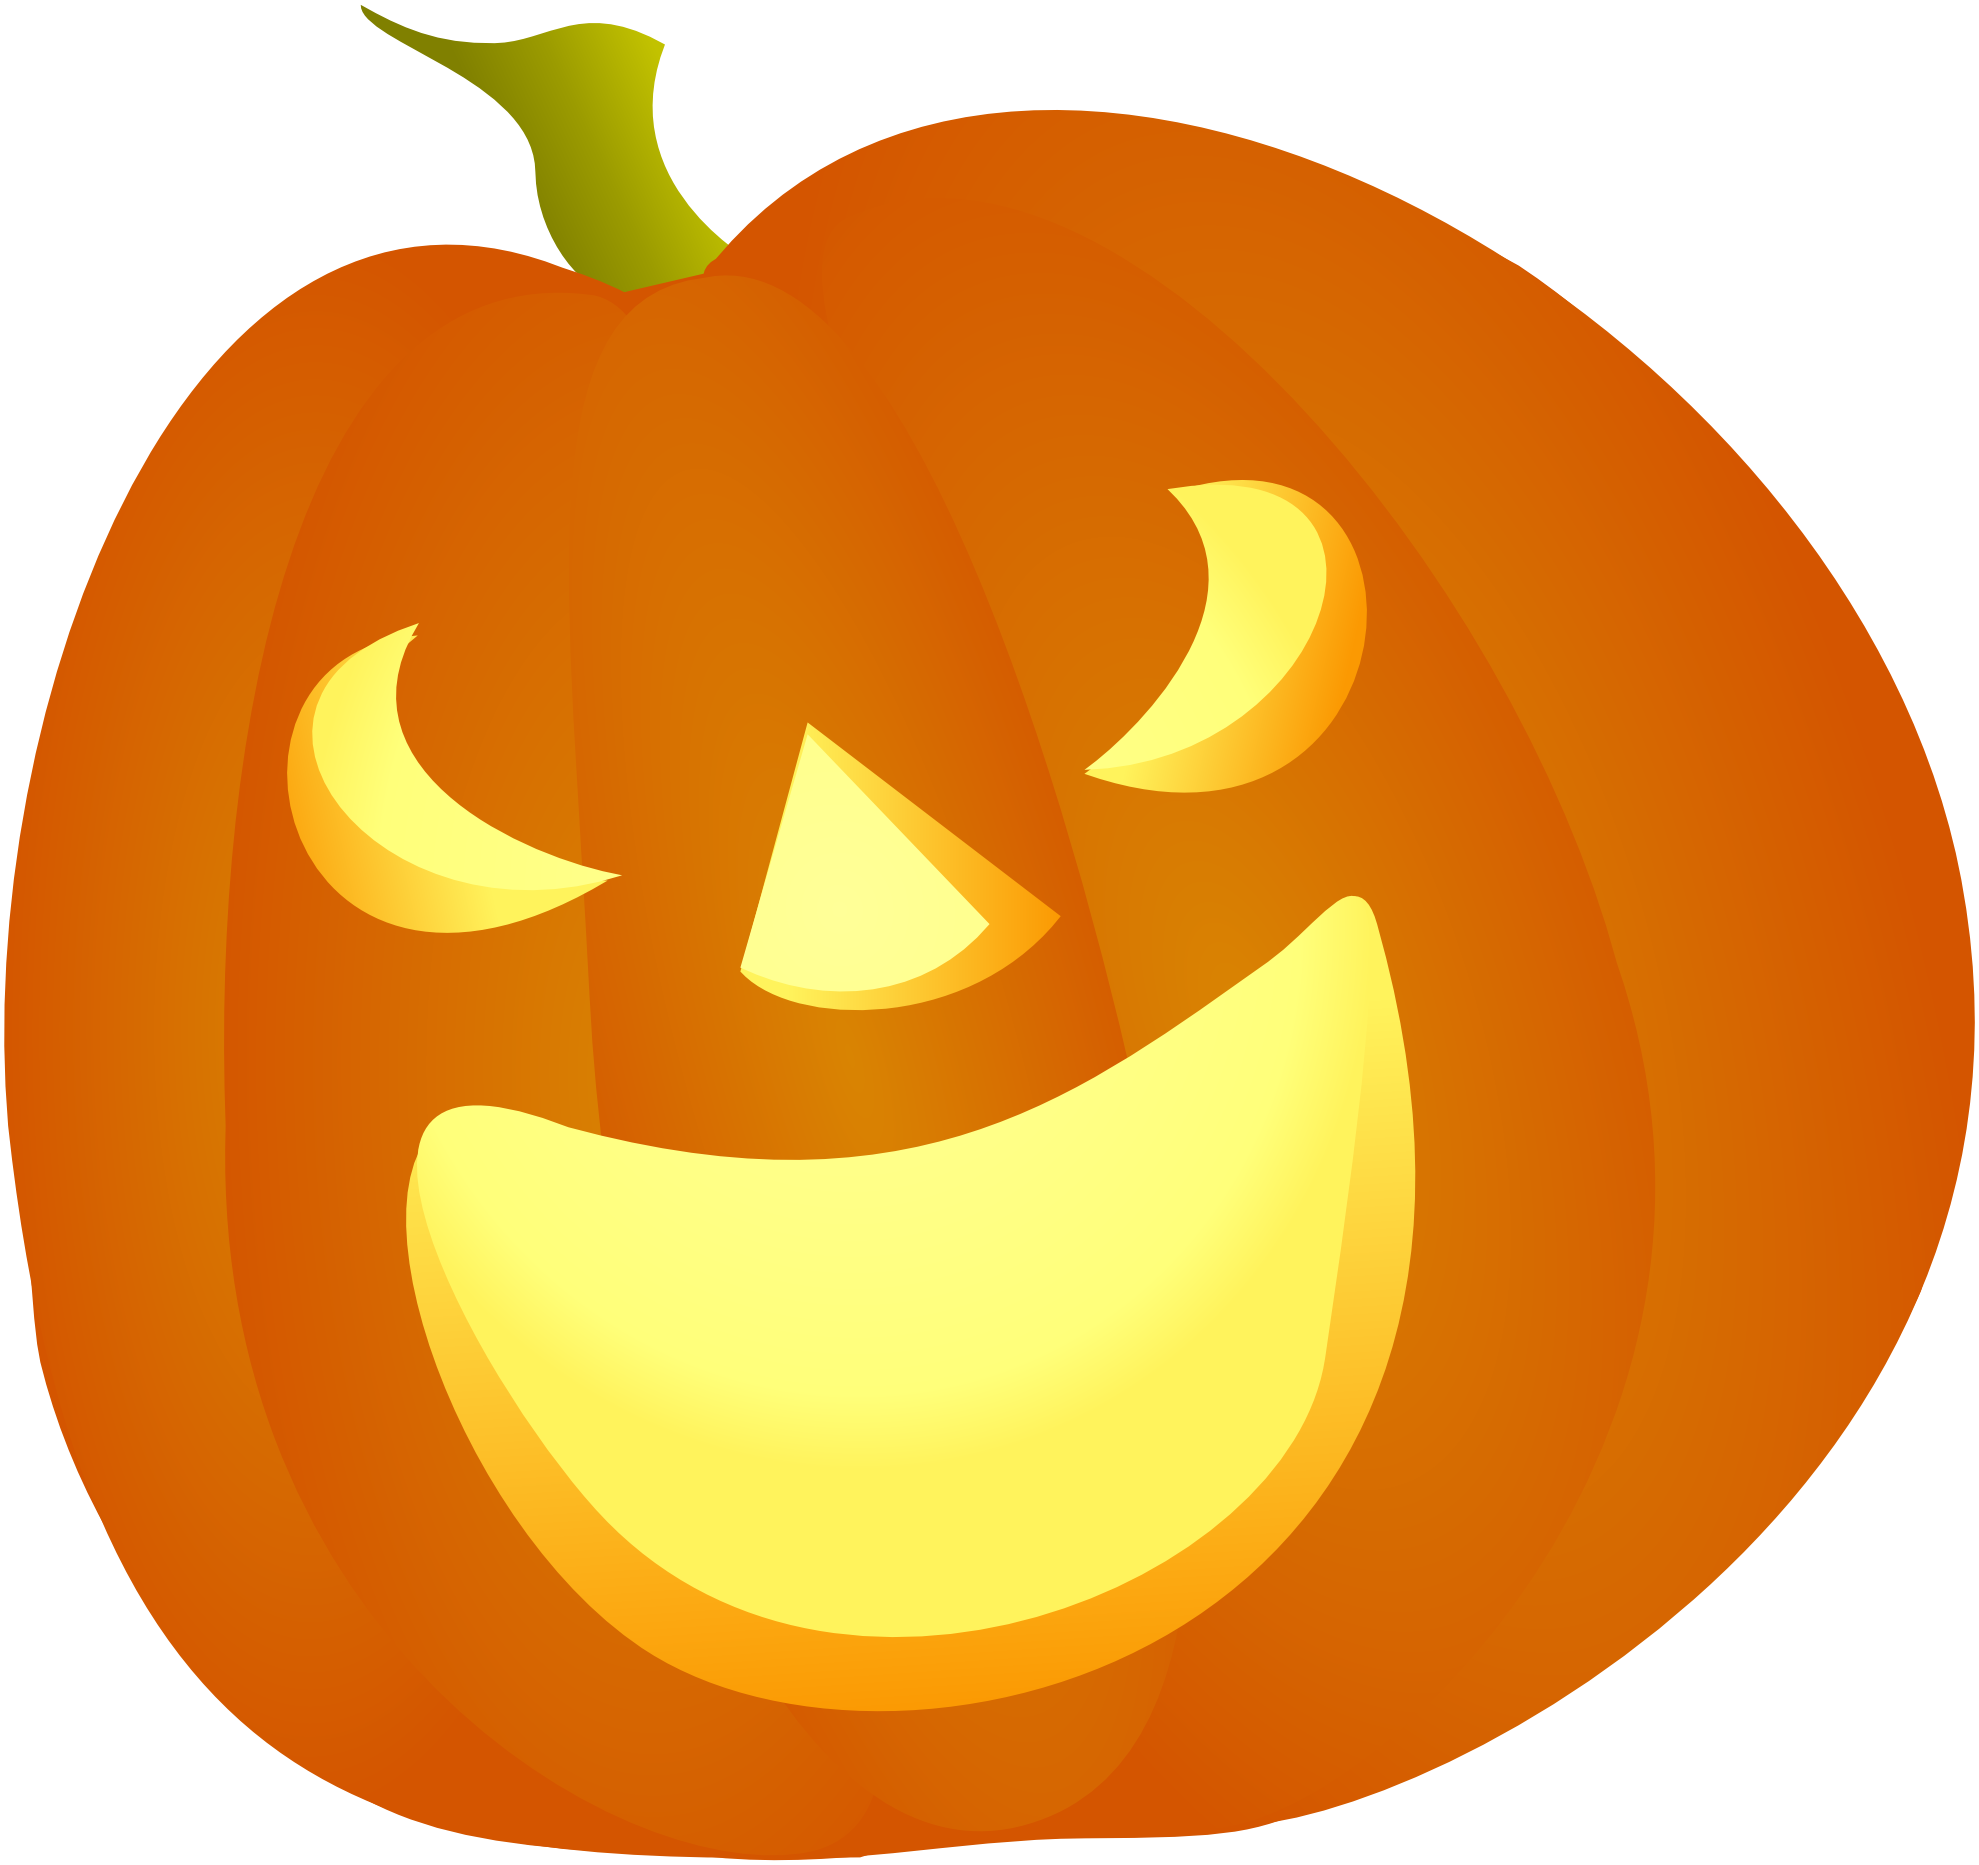 Halloween png cyberuse holidays. Cute pumpkin carving clipart